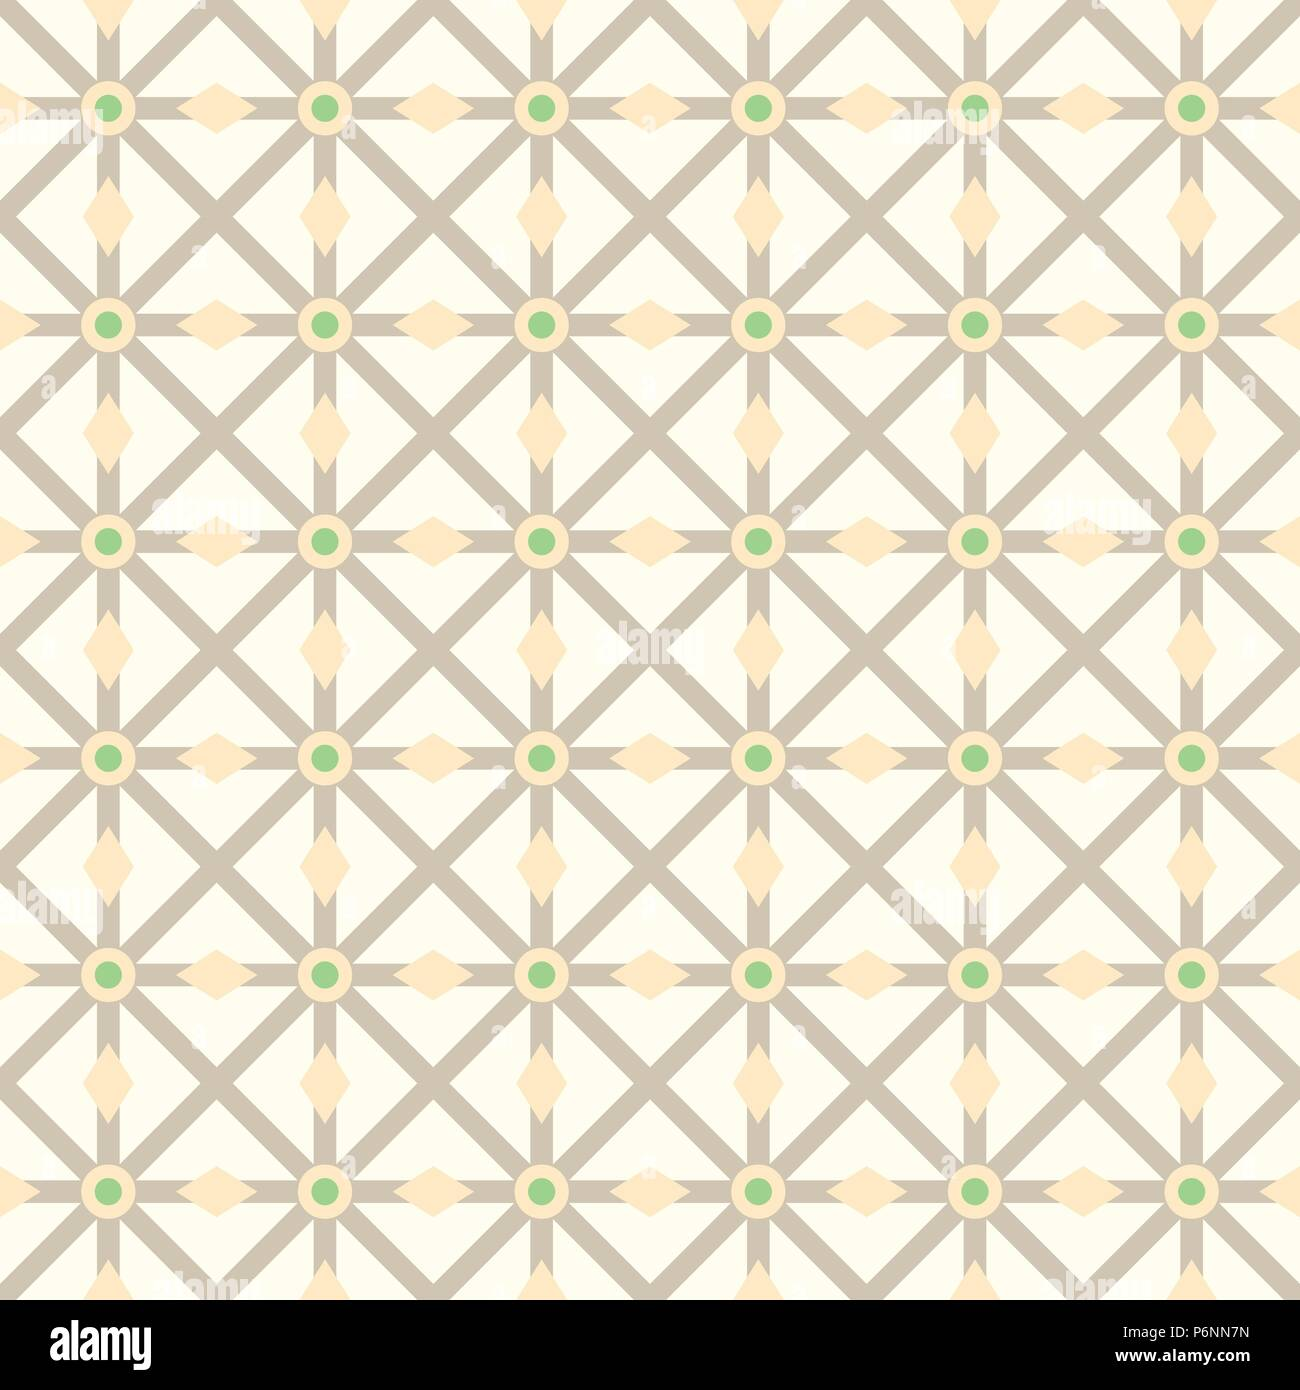 Brown asterisk or crossed line and circle and triangle seamless pattern. Abstract and classic pattern style for design - Stock Vector